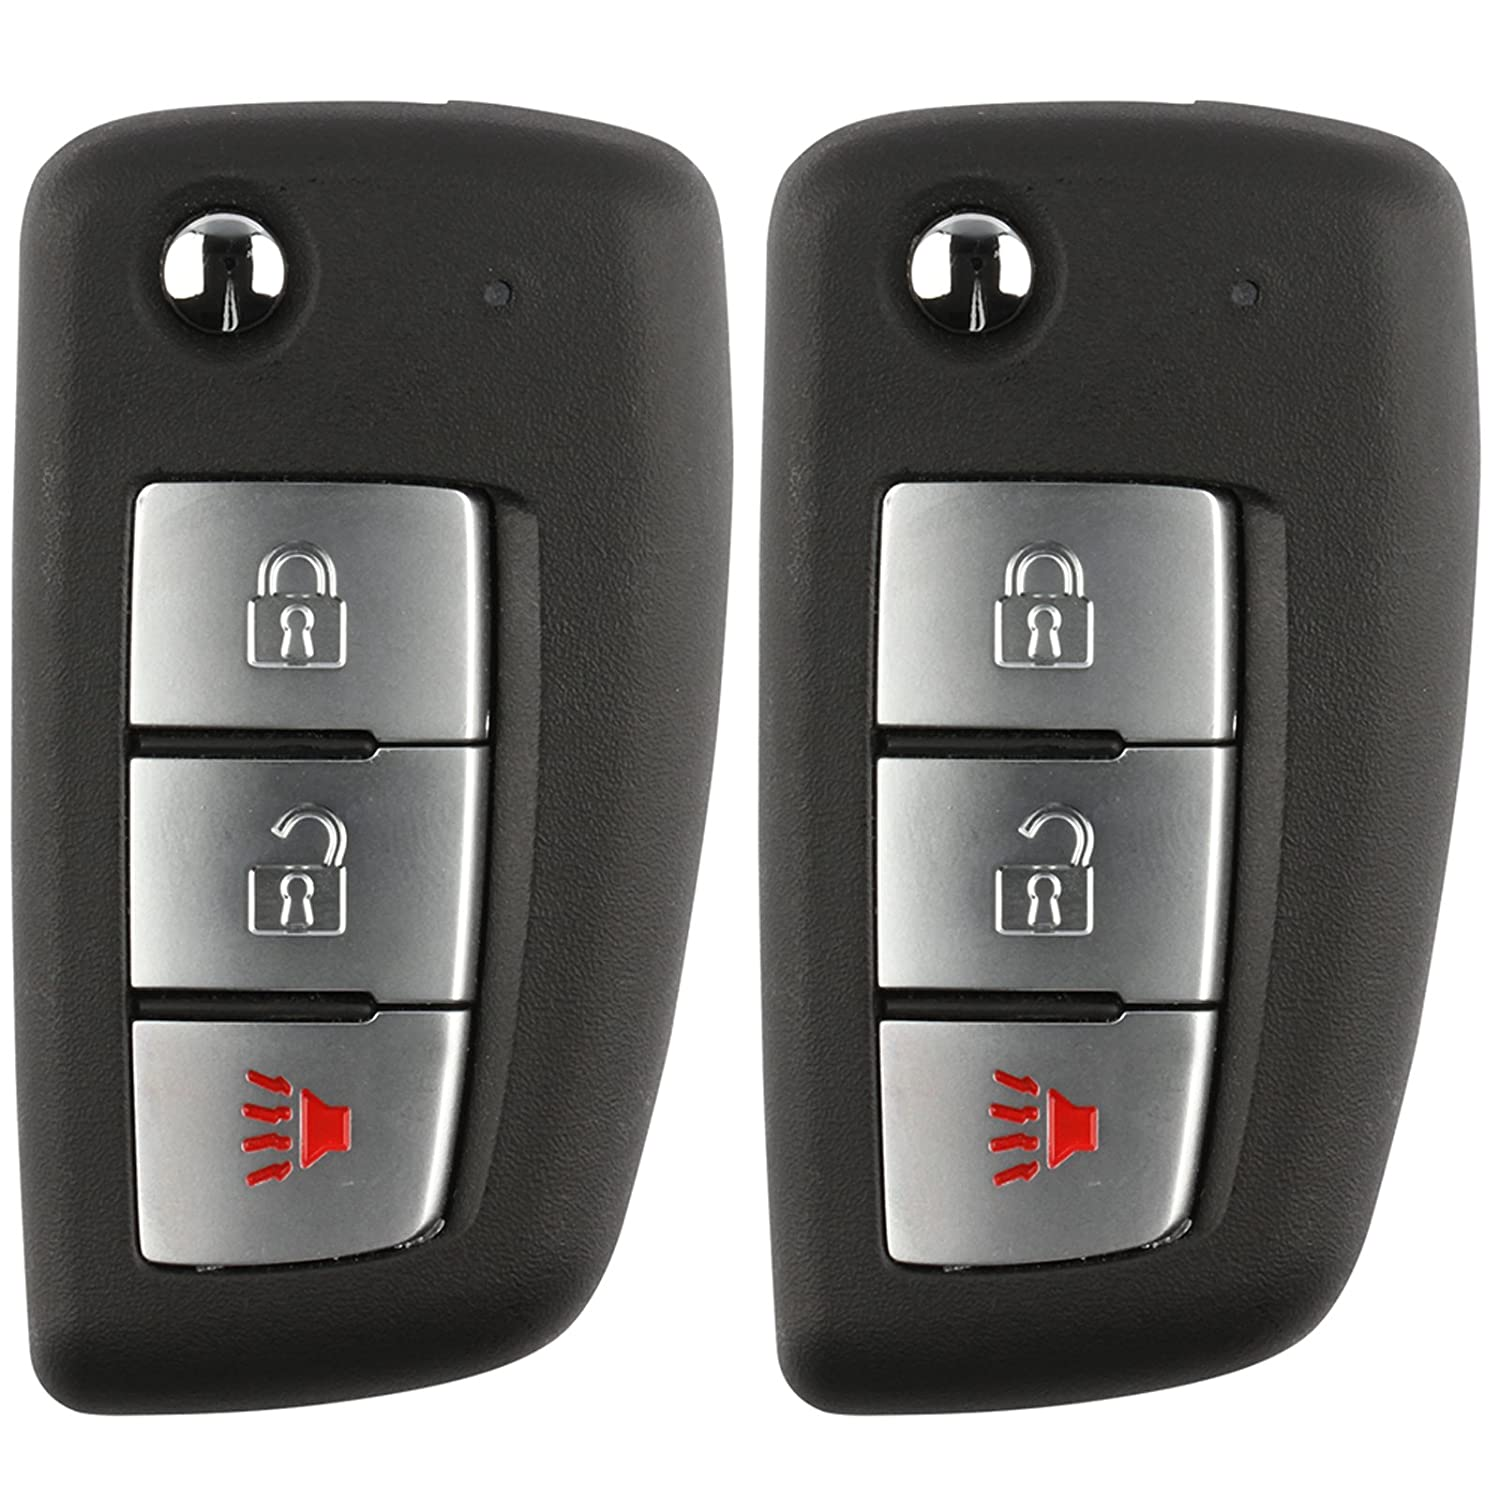 ID 46 CWTWB1U733 2 Pack NI04T Discount Keyless Replacement Uncut Car Remote Fob Key Combo Compatible with KBRASTU15 LYSB01I41I6V6-ELECTRNCS